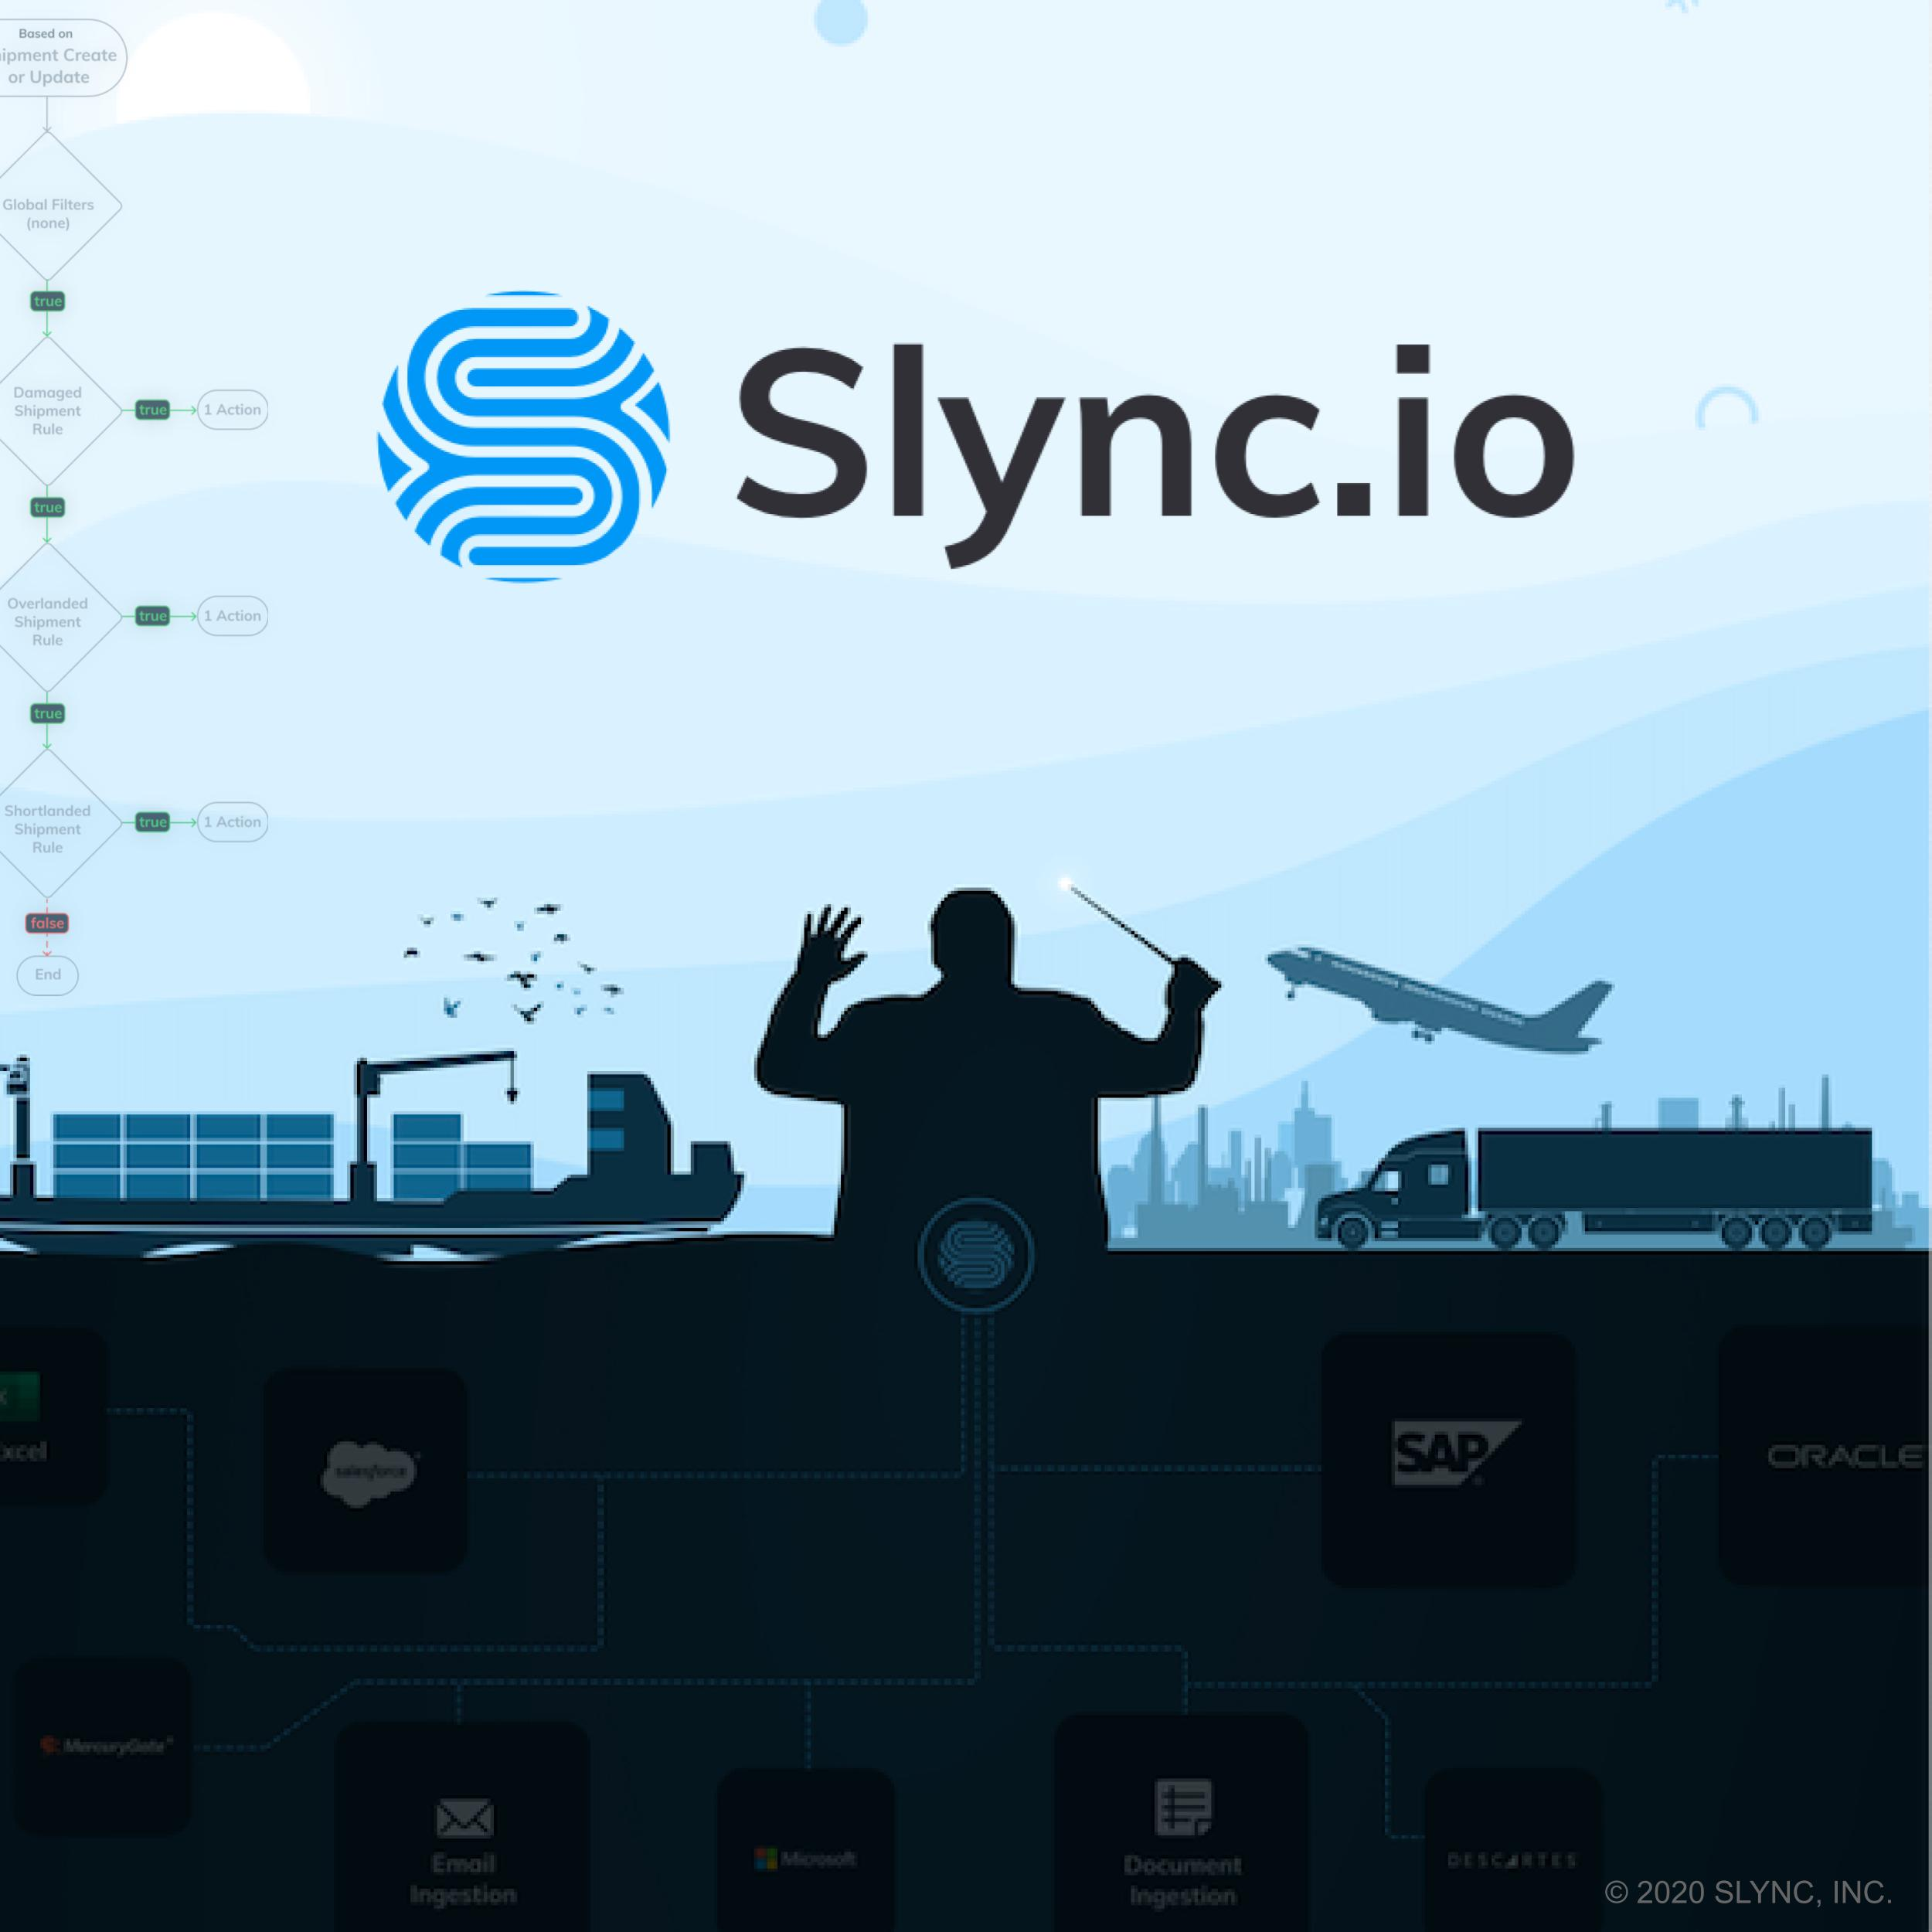 The Friday Five: Slync.io raises new funding to reinvent the logistics industry